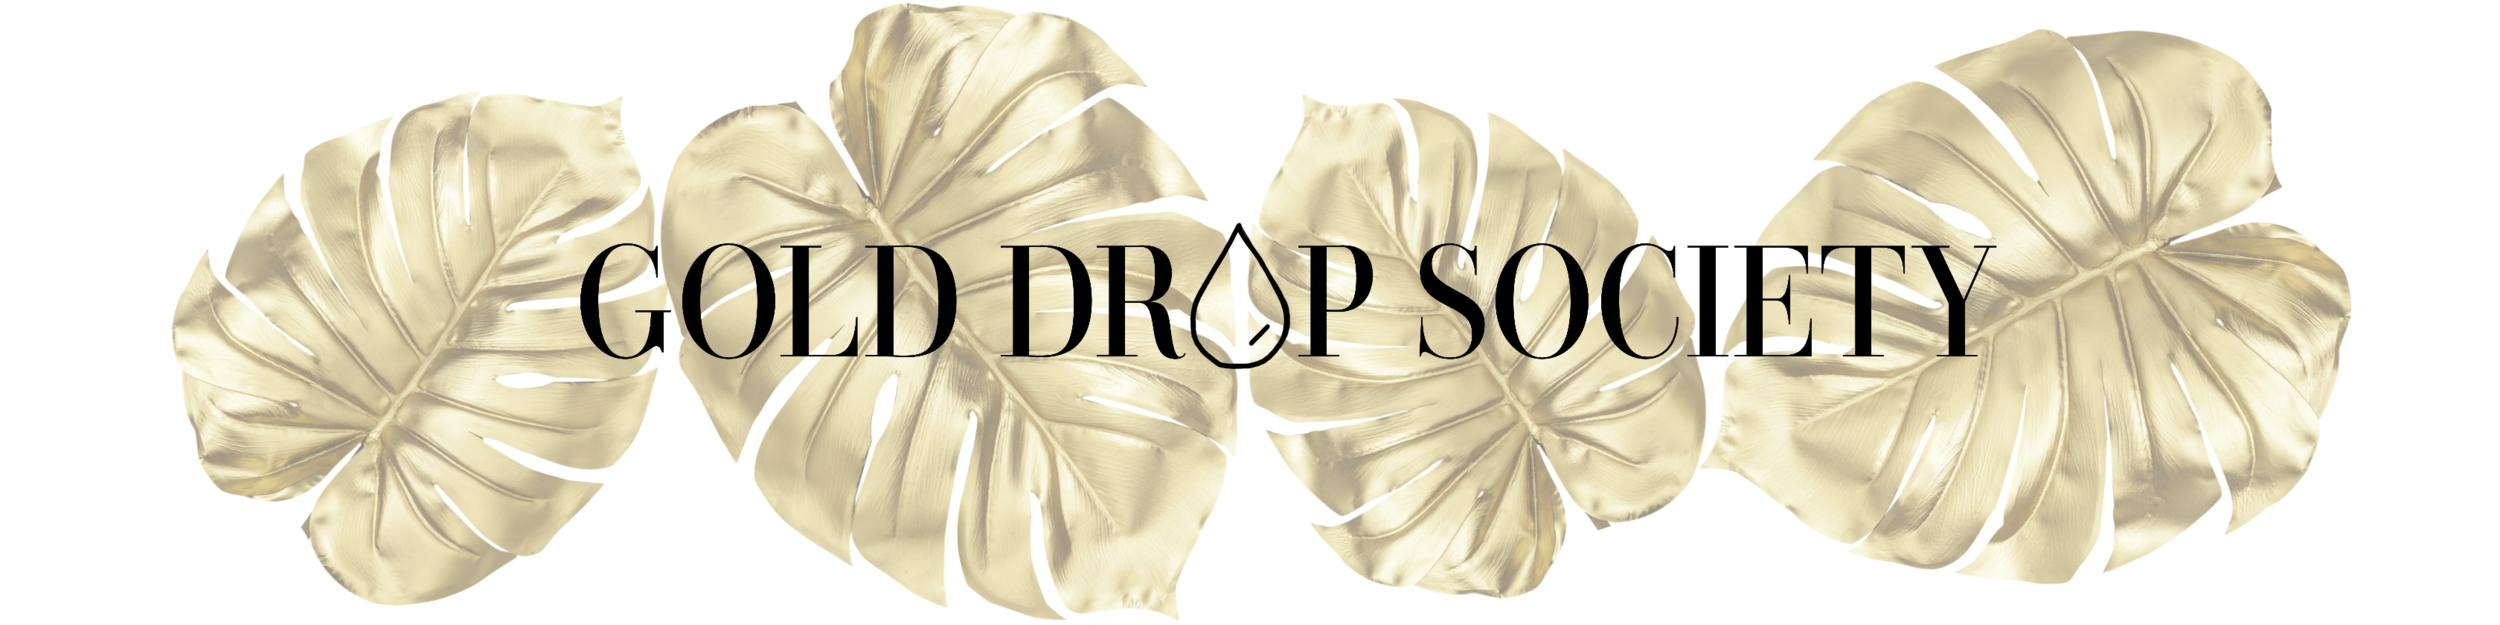 Gold Drop Society